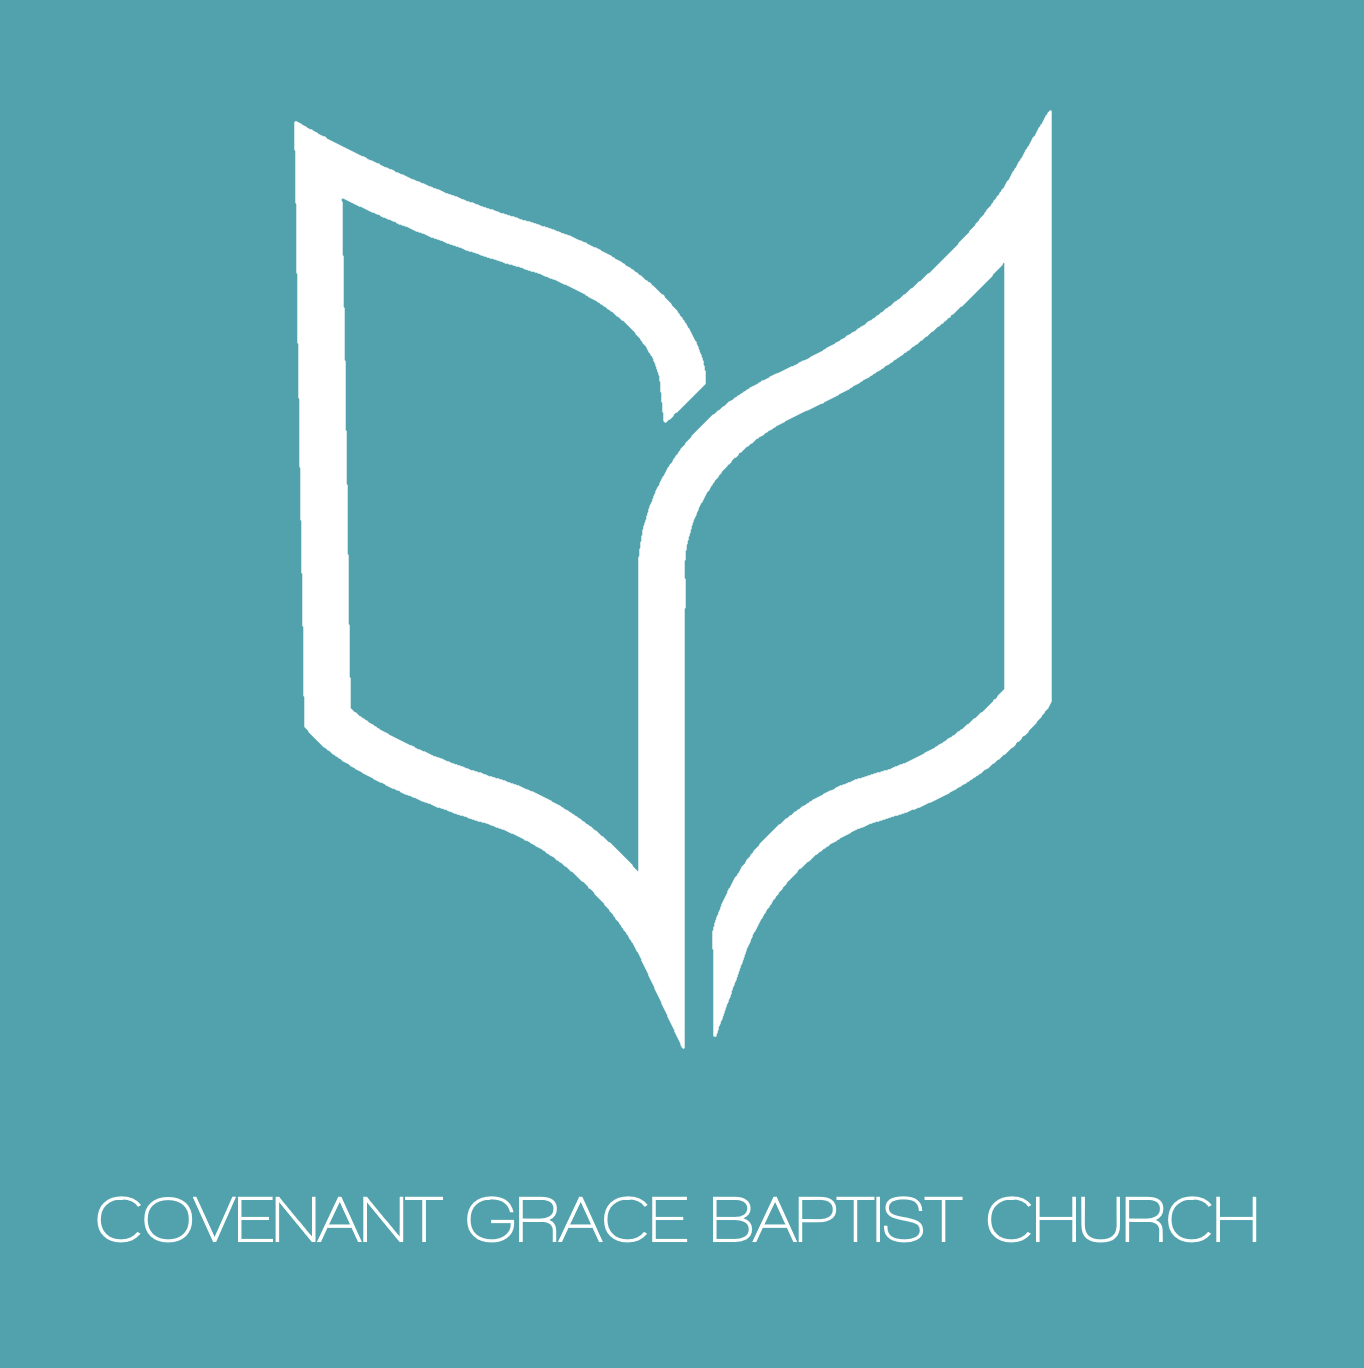 Covenant Grace Baptist Church logo